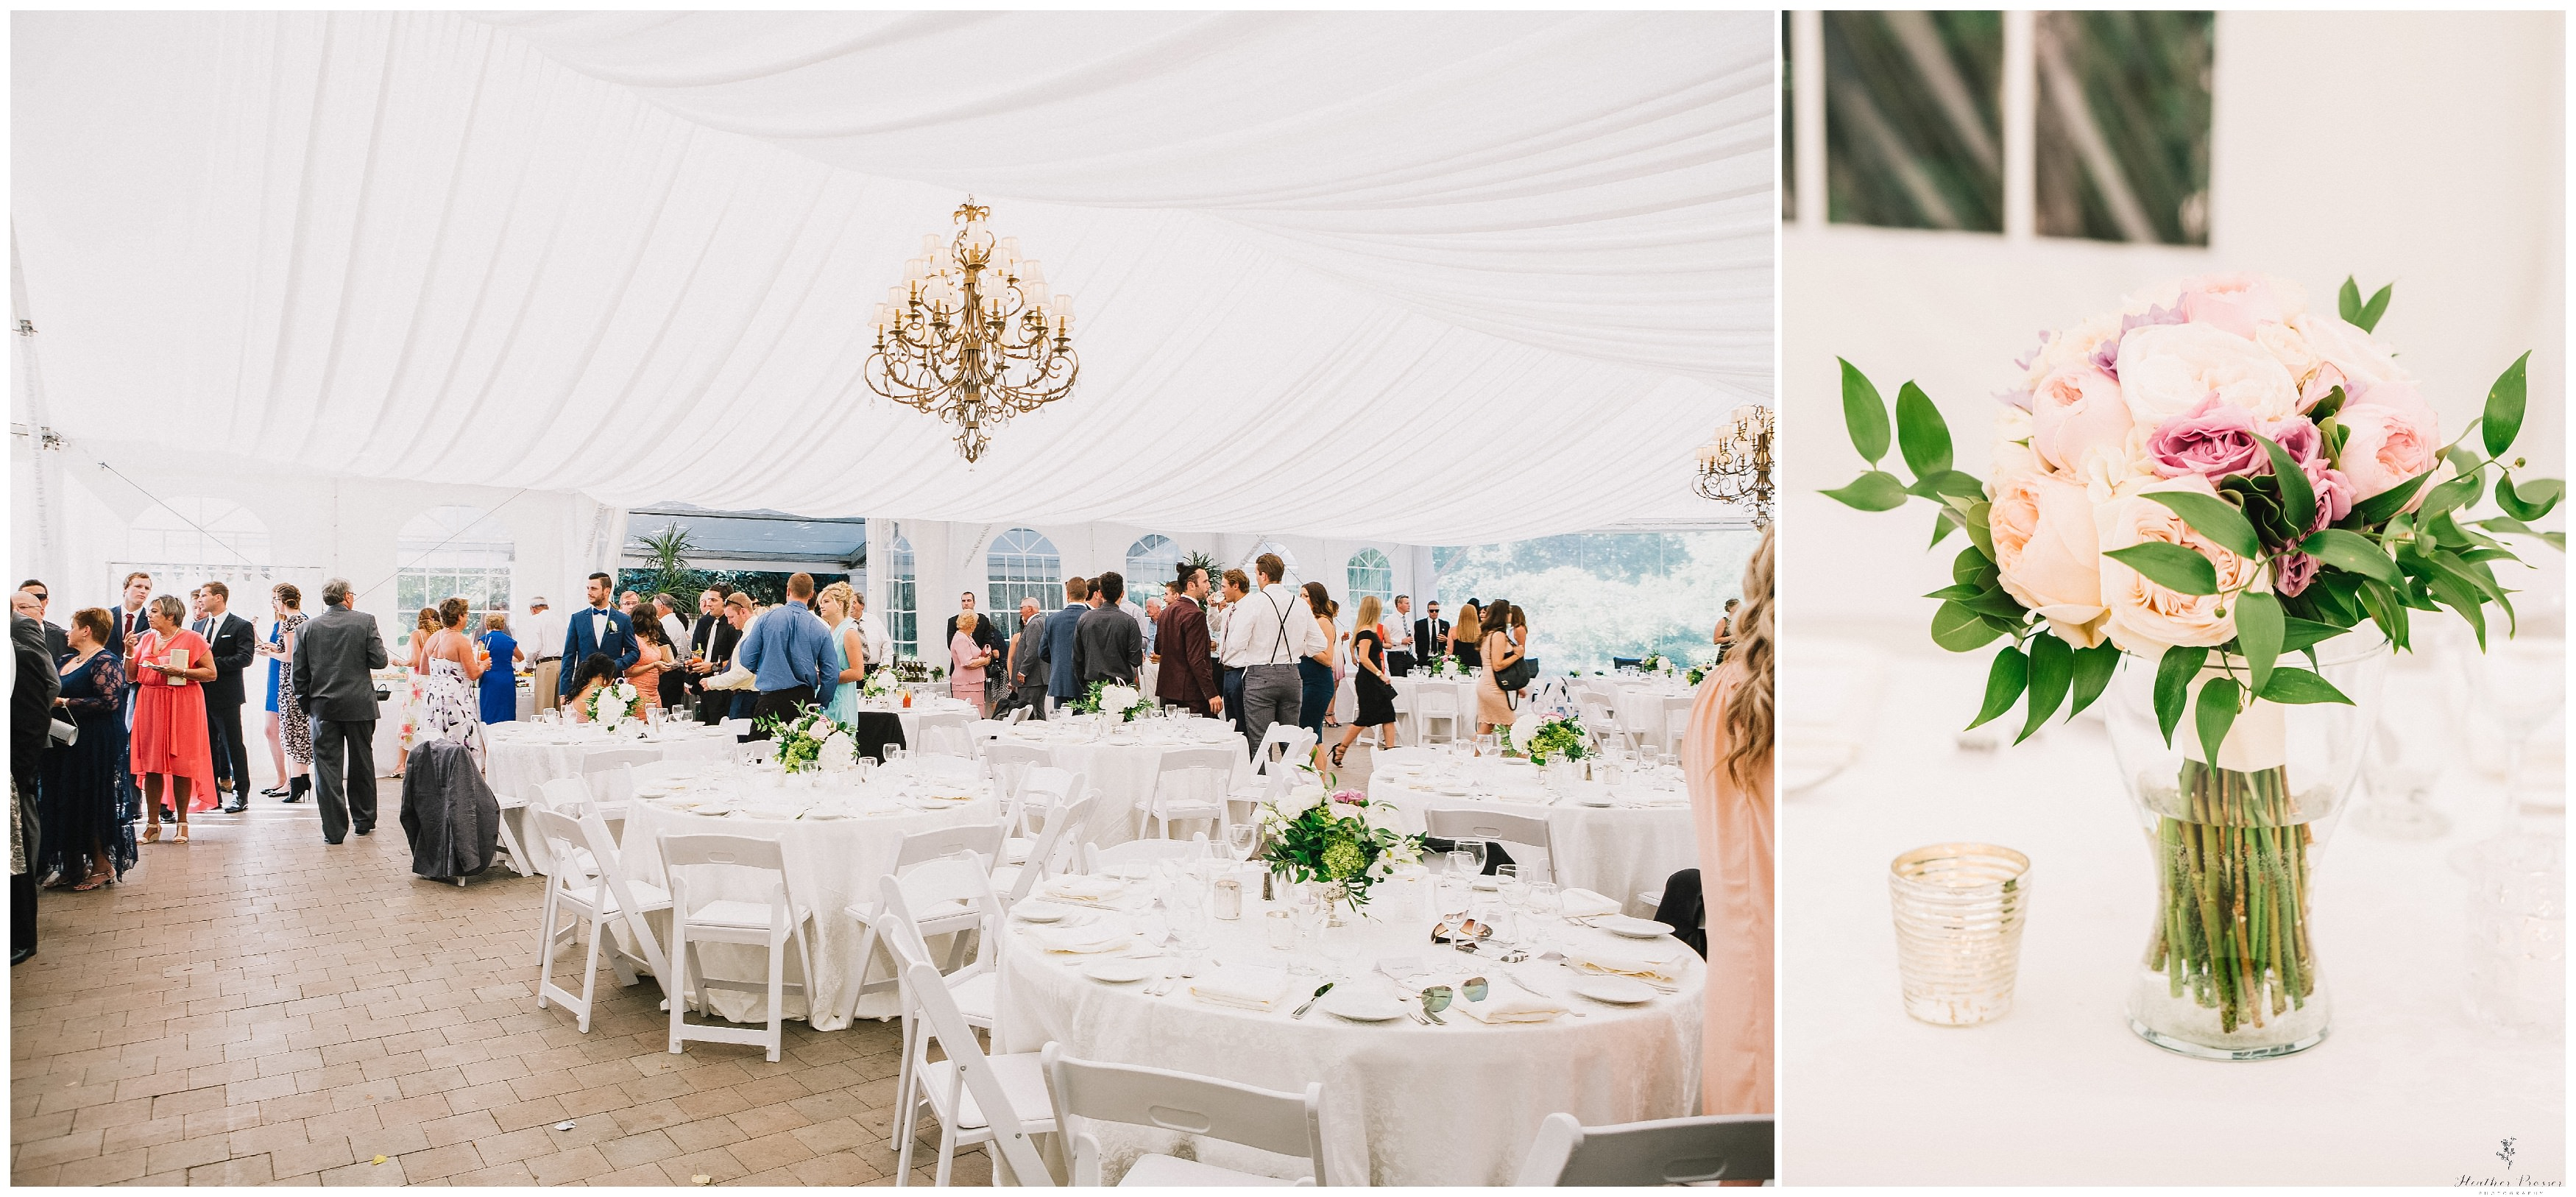 Nestleton Waters Inn Wedding_1901.jpg